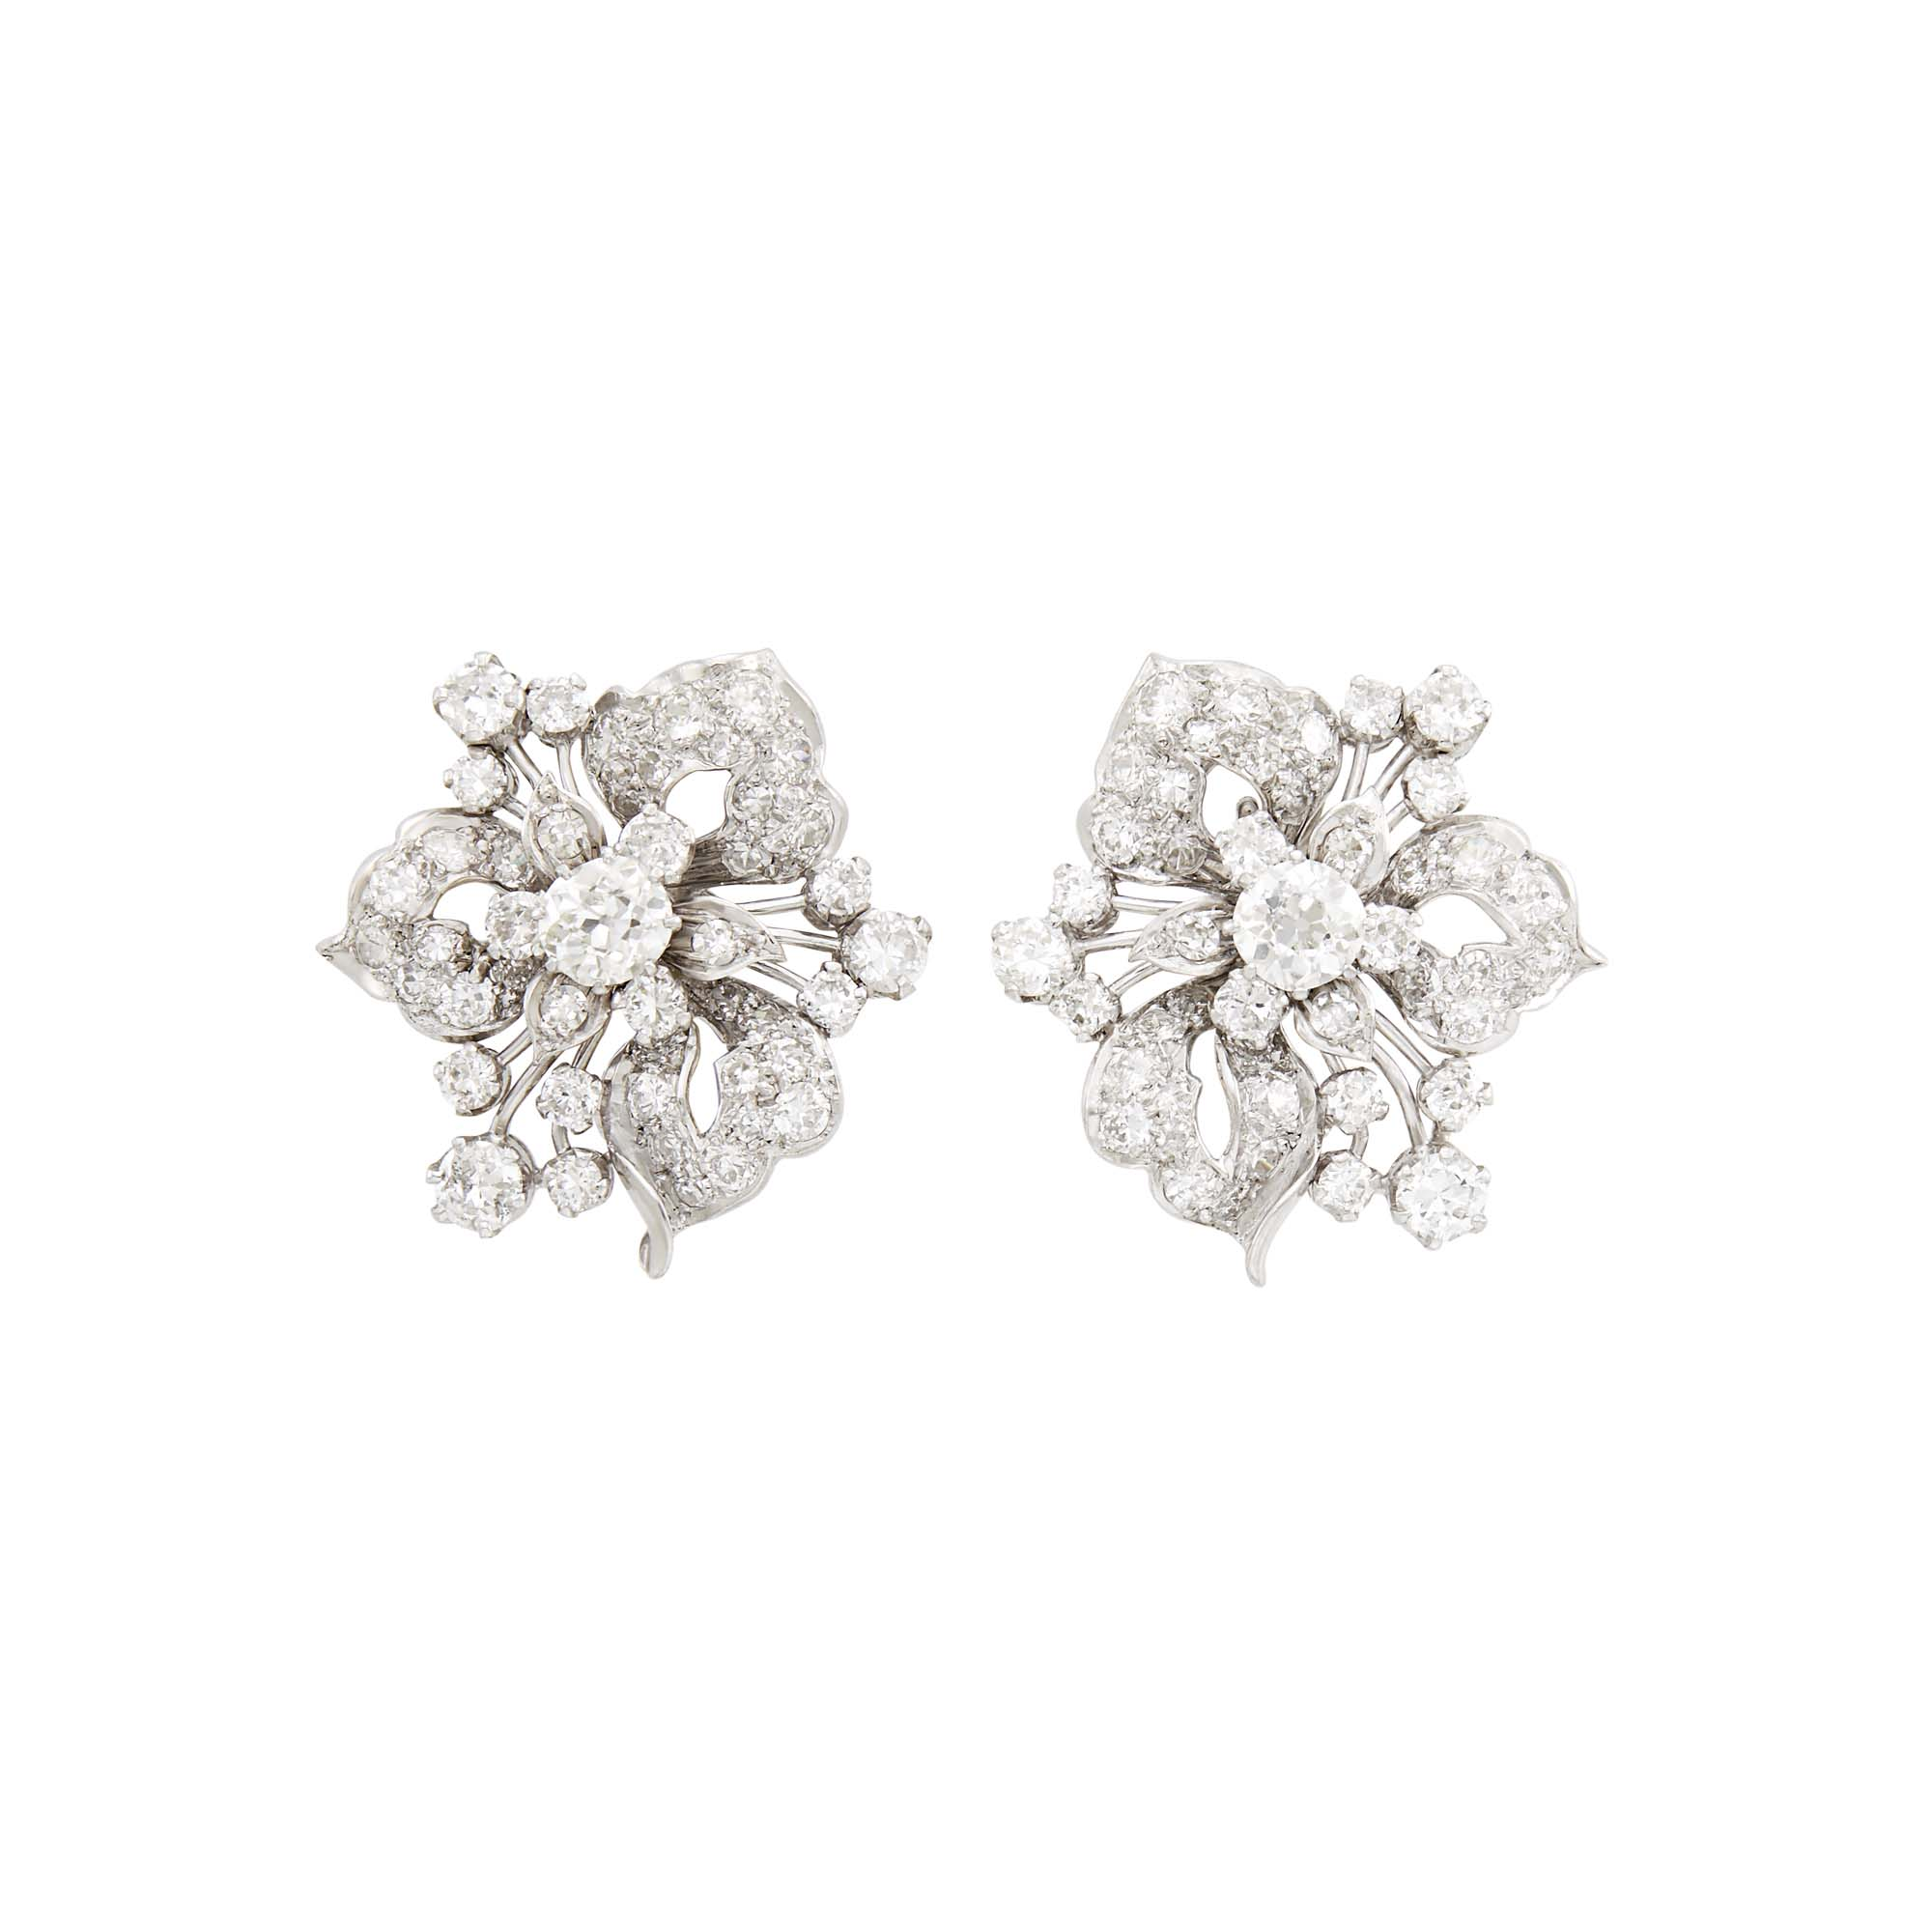 Lot image - Pair of Platinum and Diamond Flower Earrings